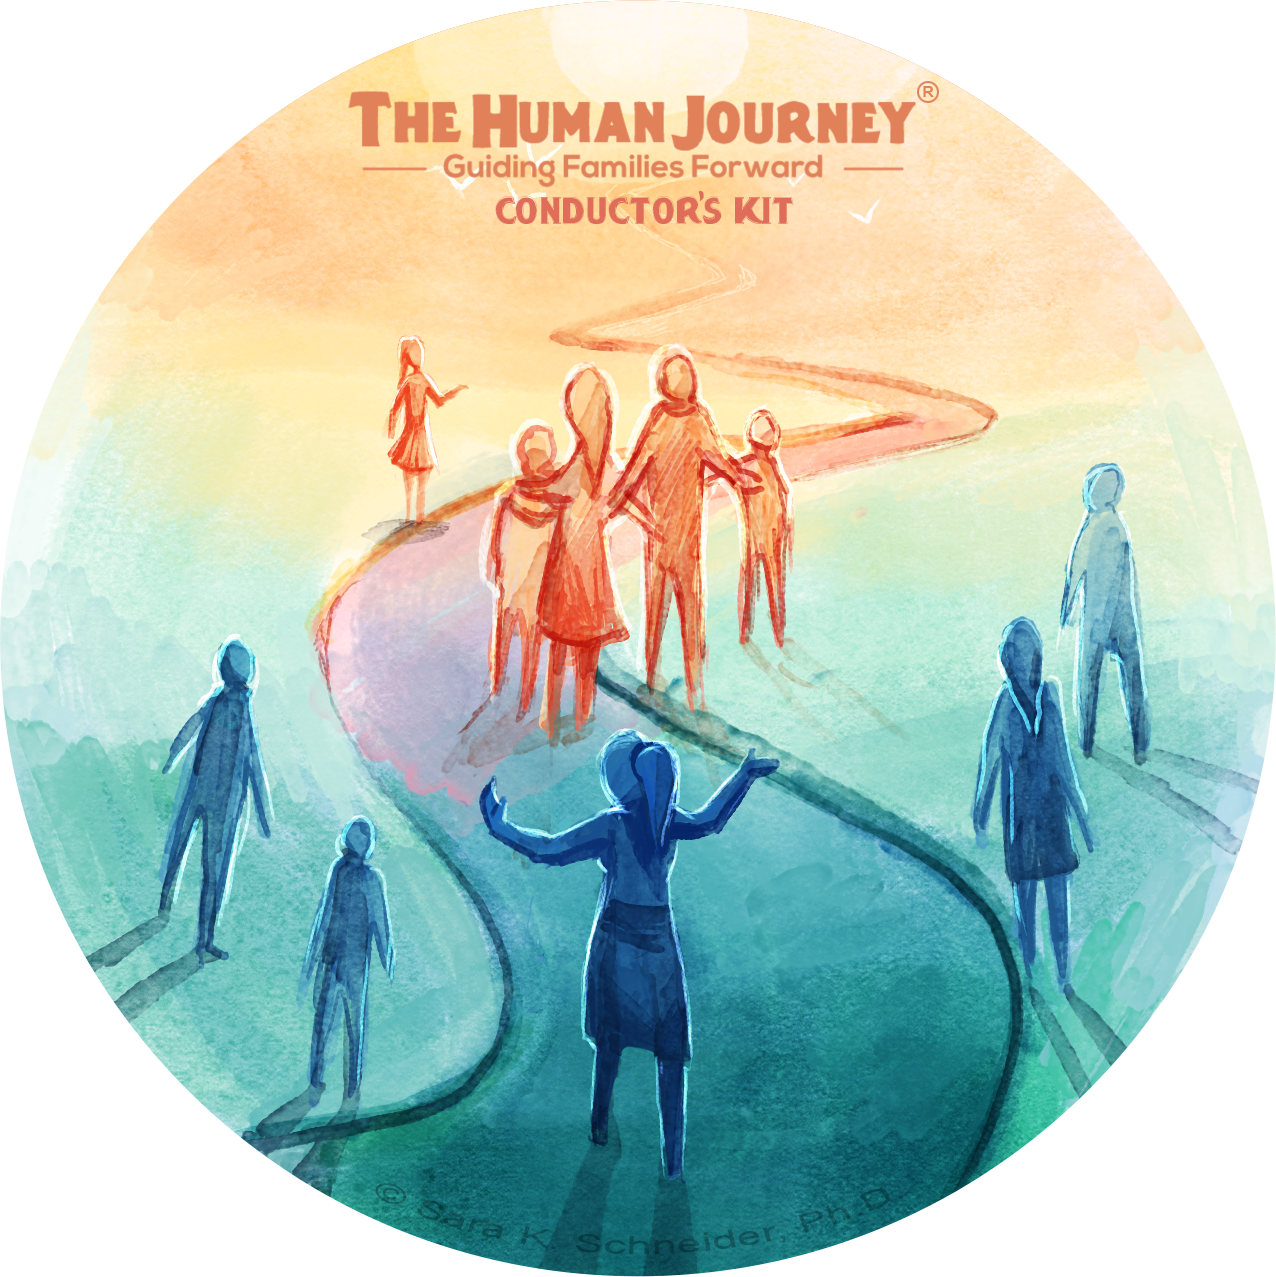 THE HUMAN JOURNEY®